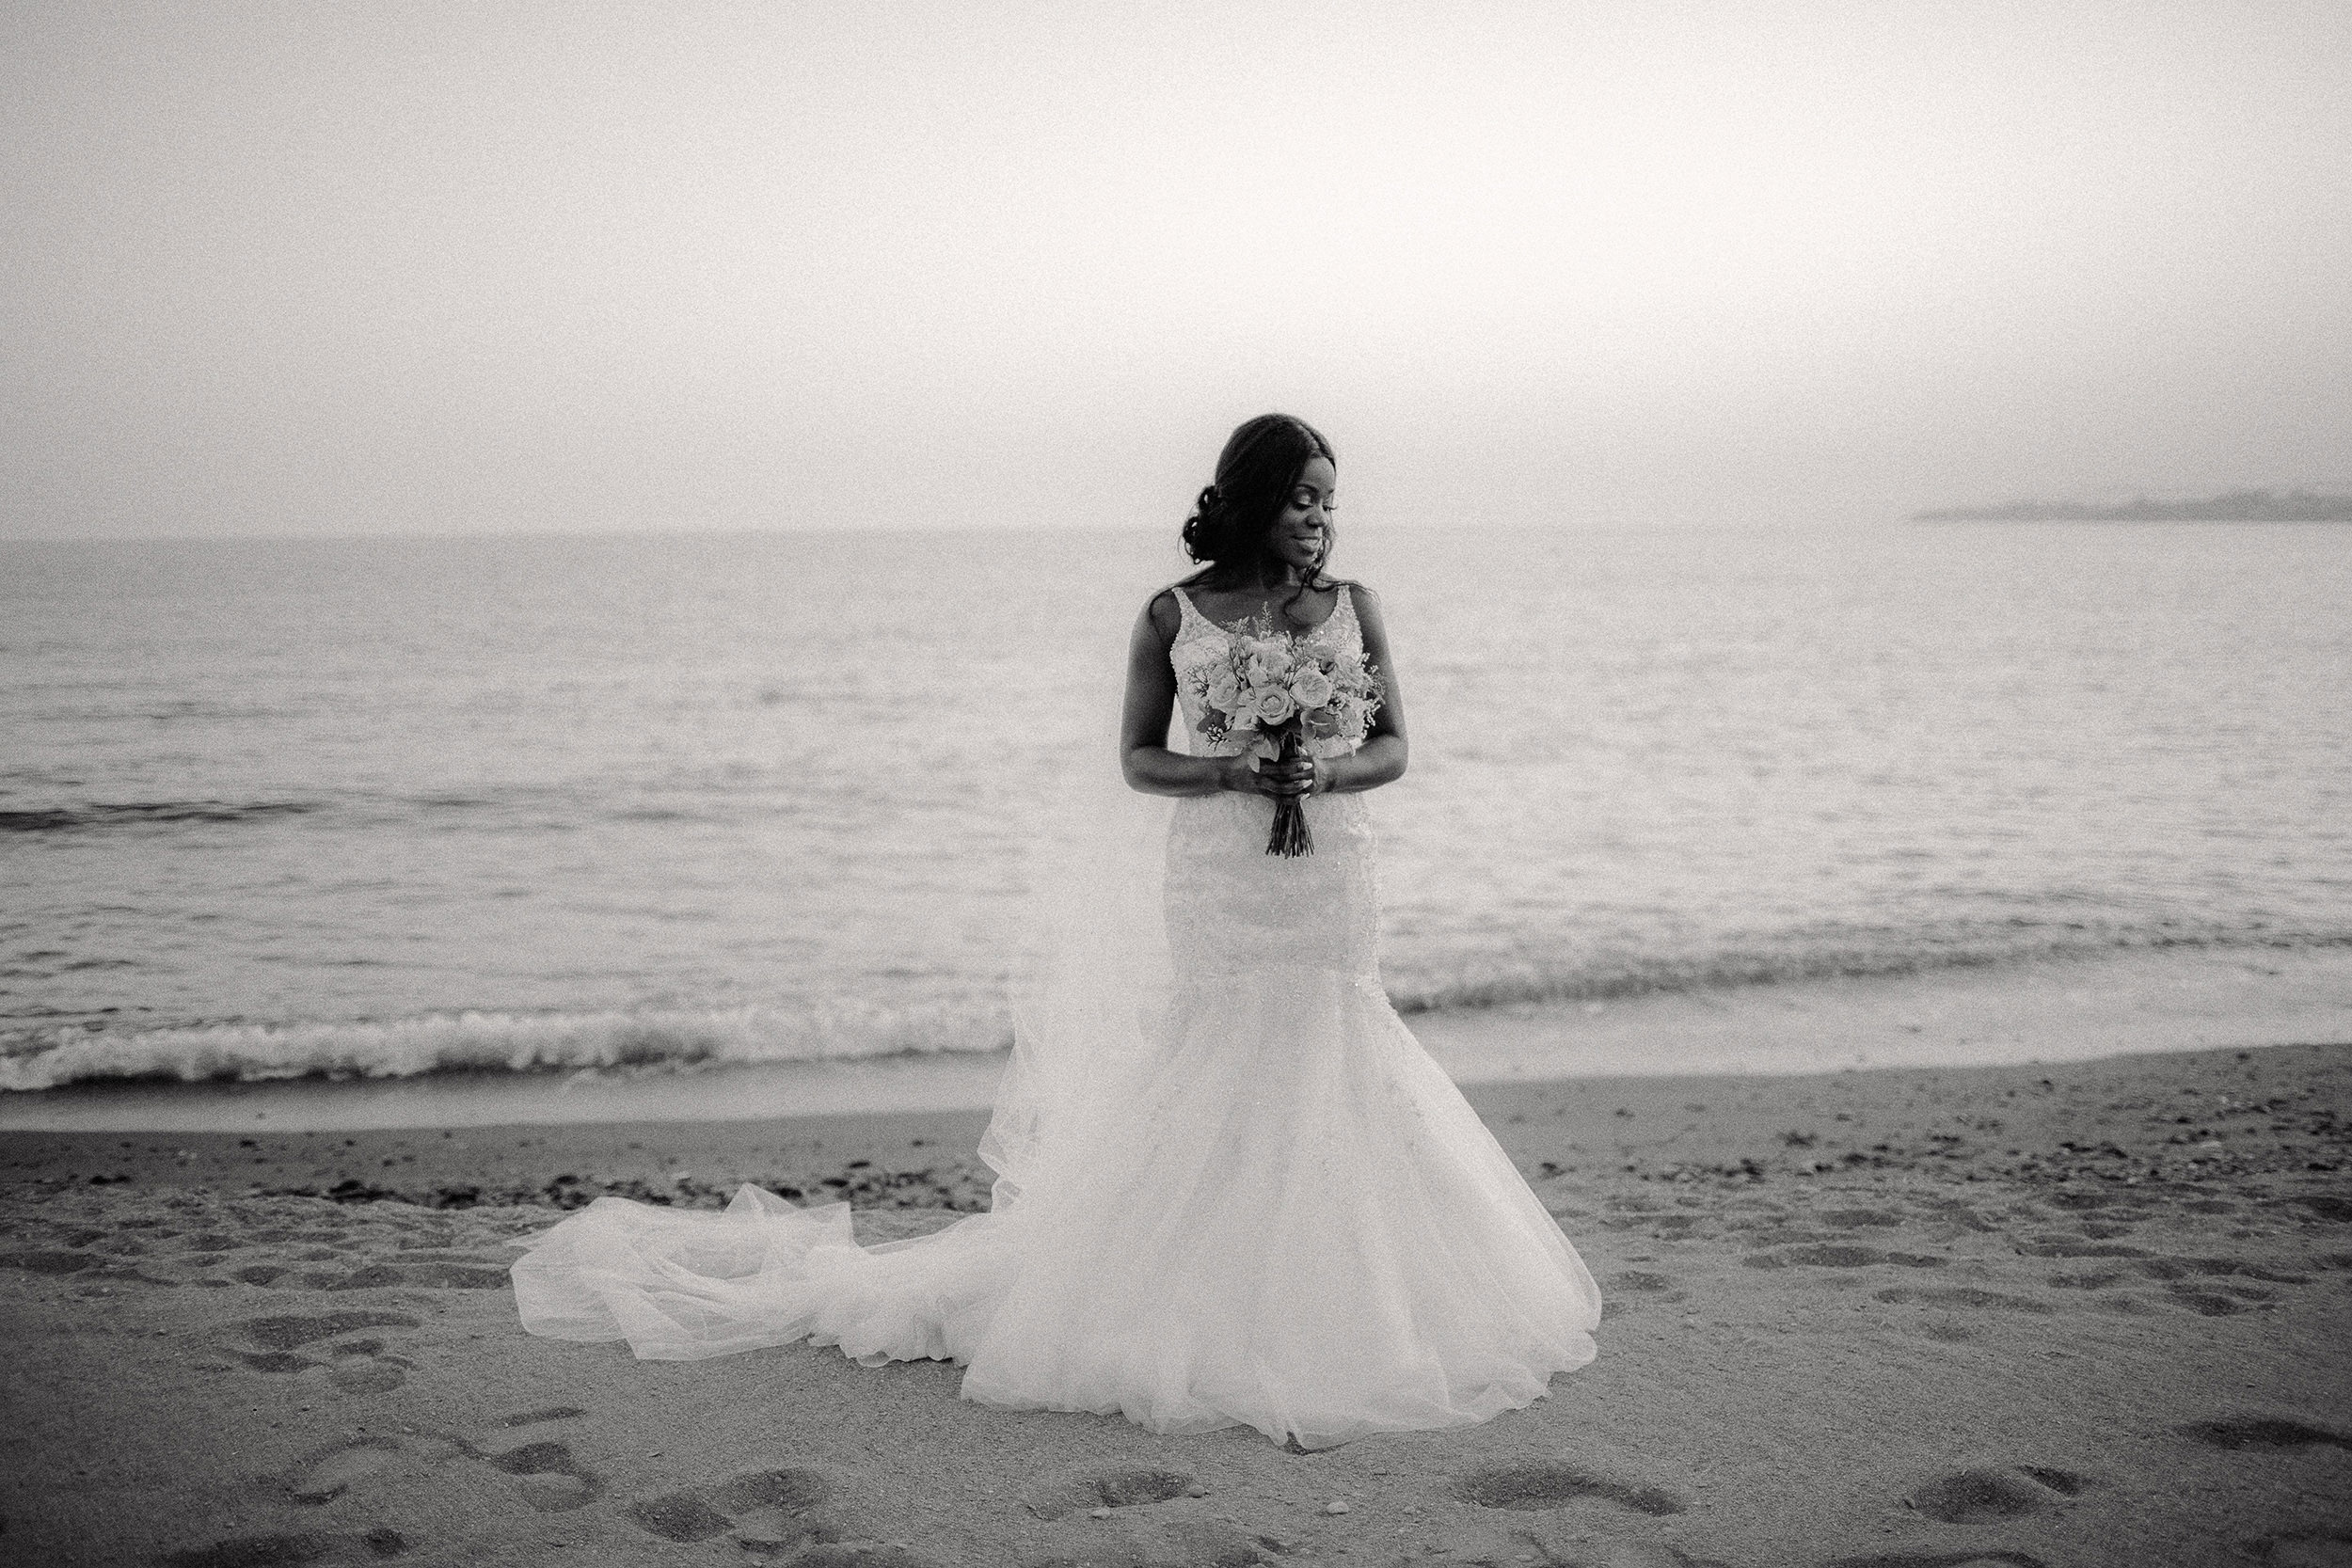 creative wedding photographer in costa del sol